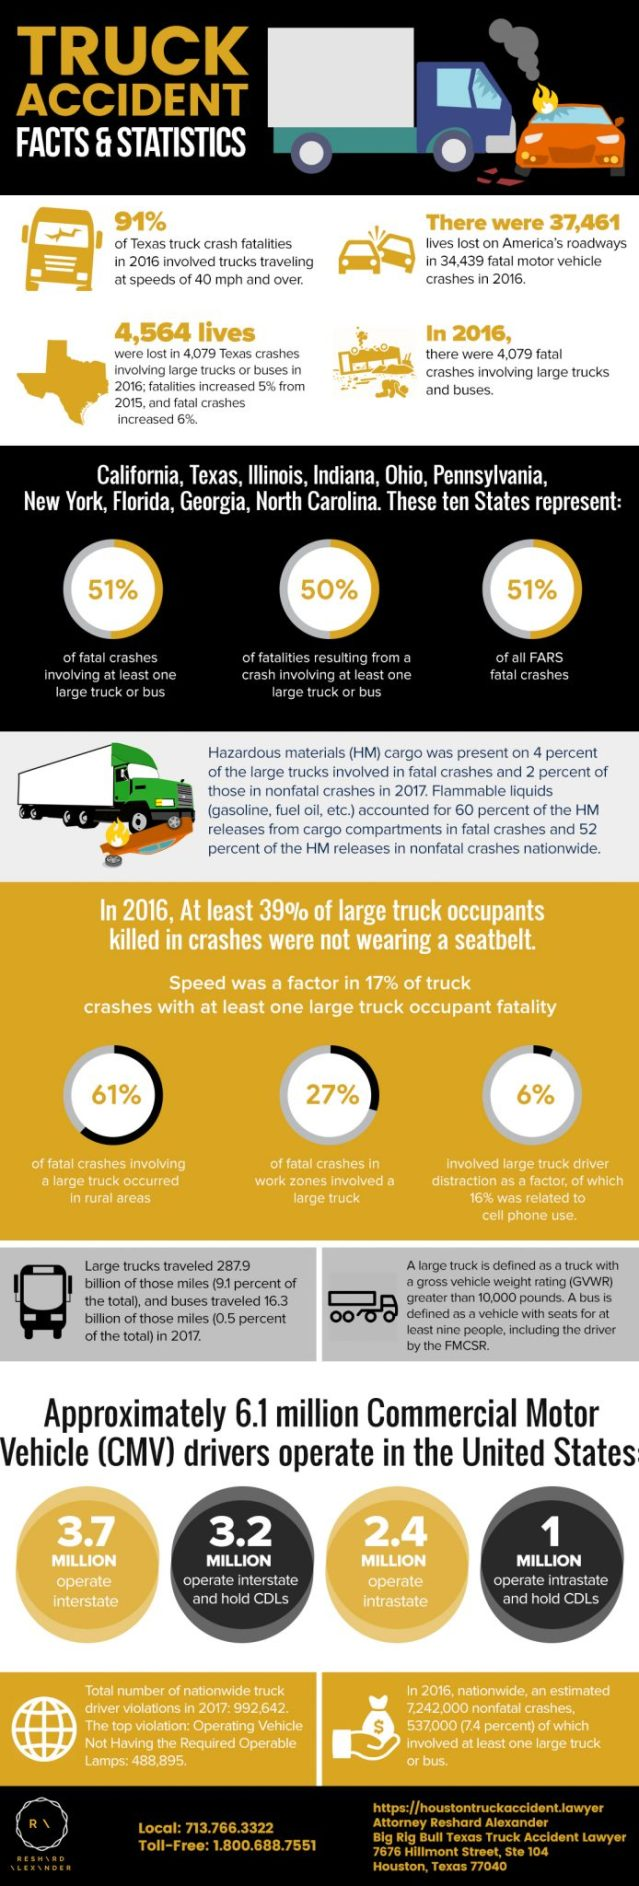 houston truck accident lawyer infographic